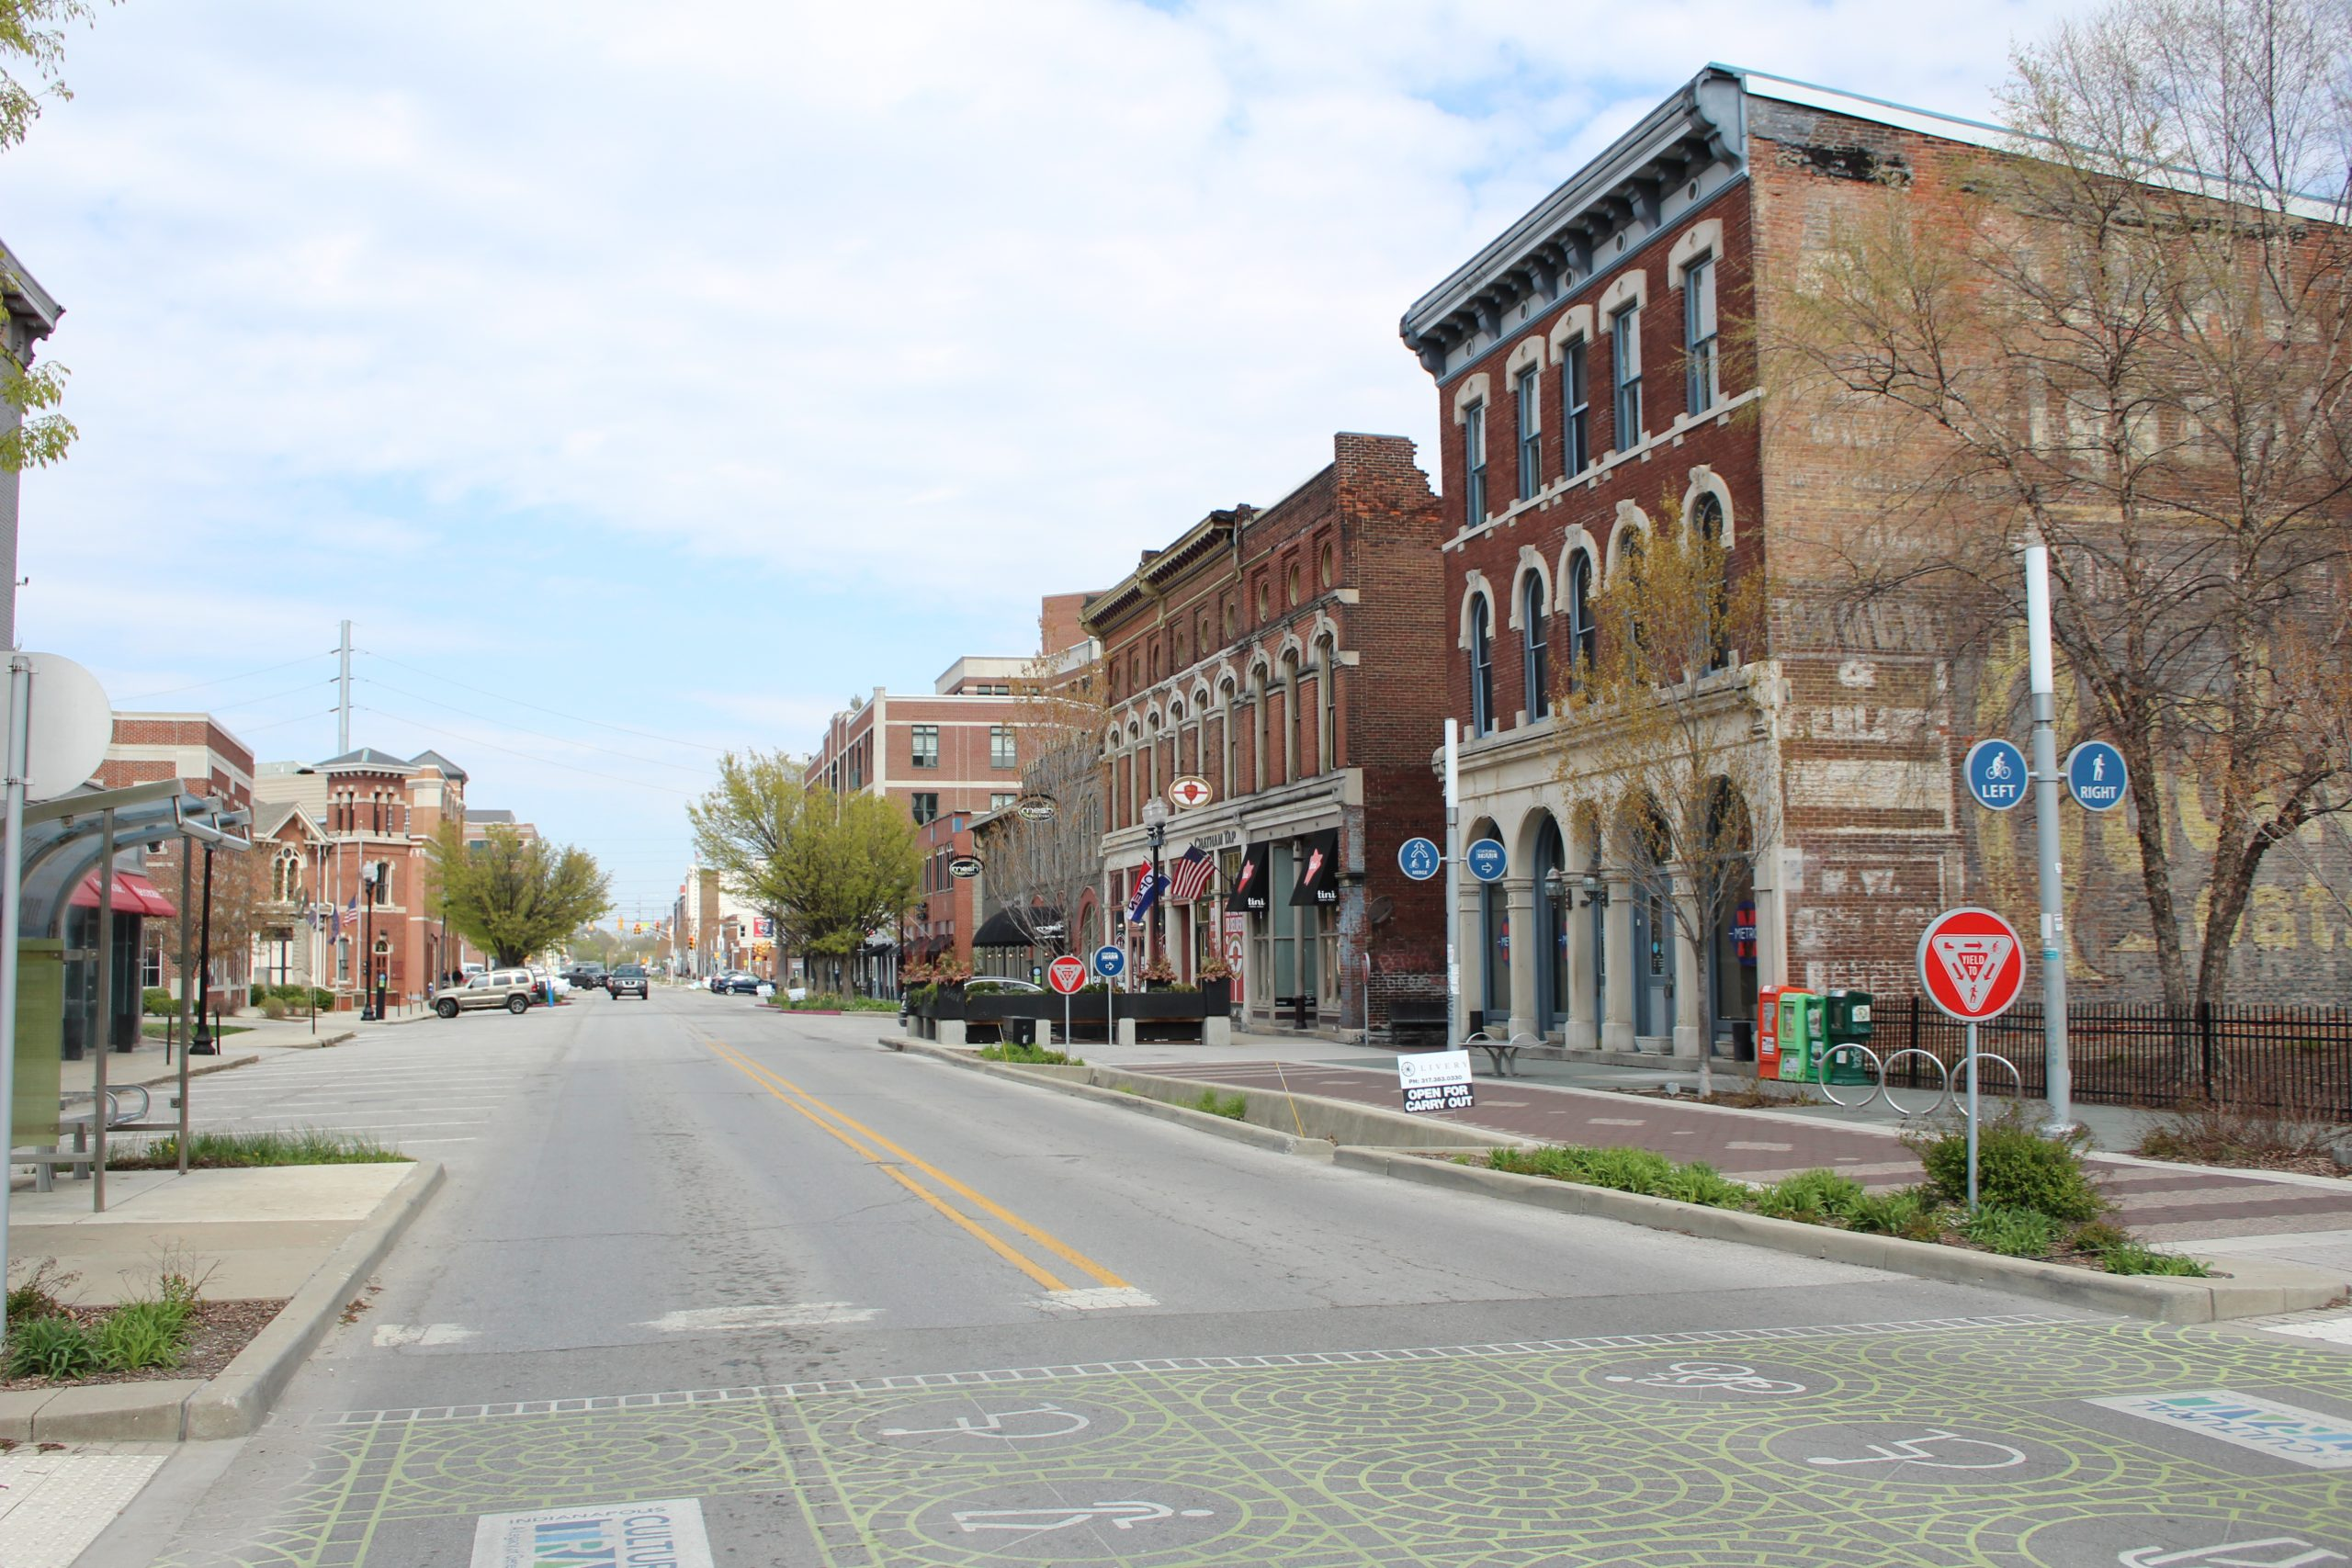 Mass Ave - Chatham Arch - Commercial District